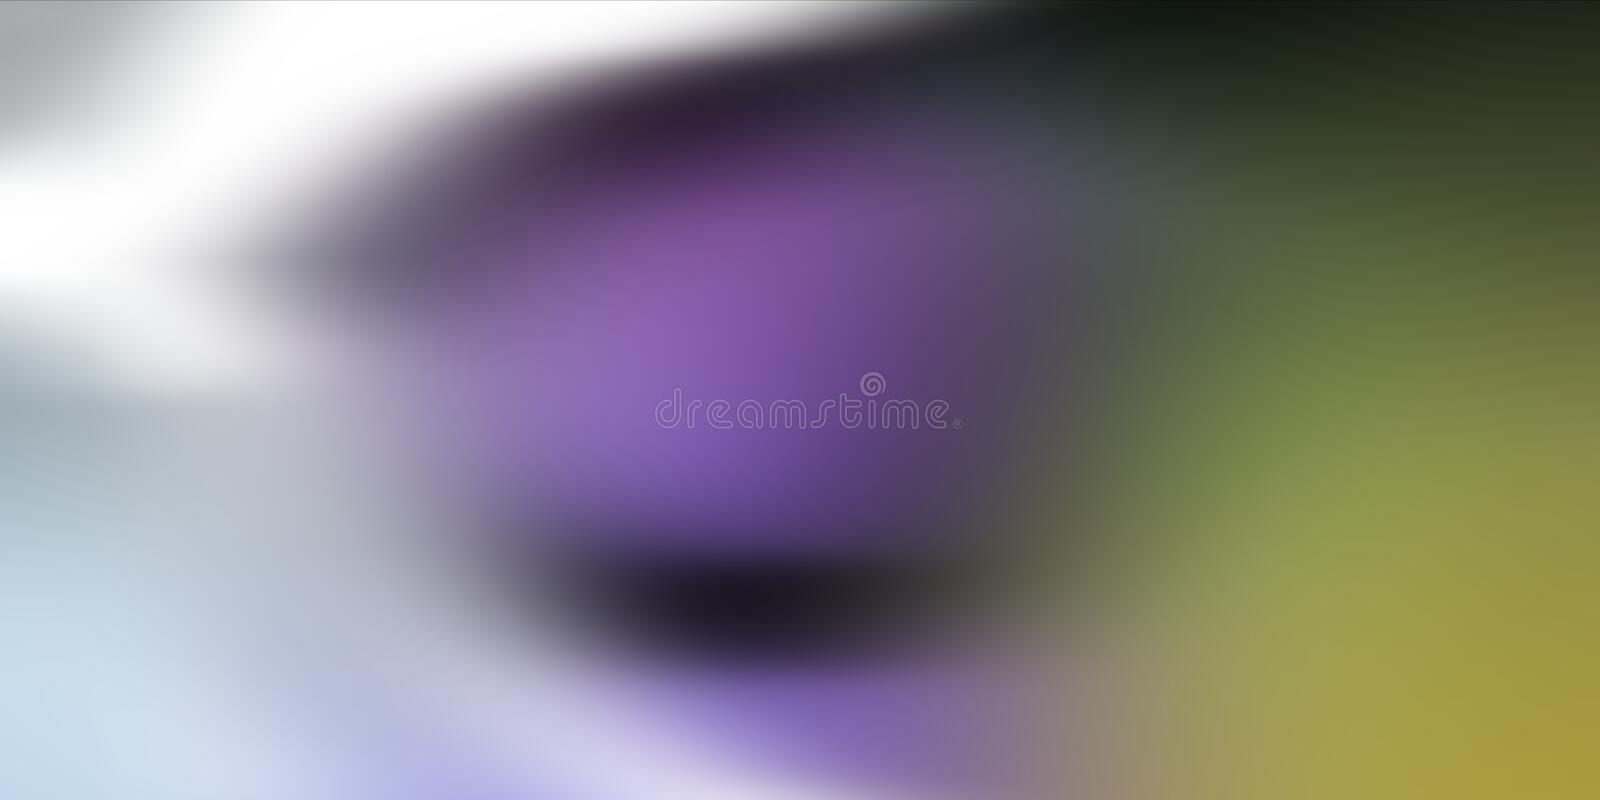 Colorful blur abstract background vector design, colorful blurred shaded background, vivid color vector illustration. royalty free stock photos